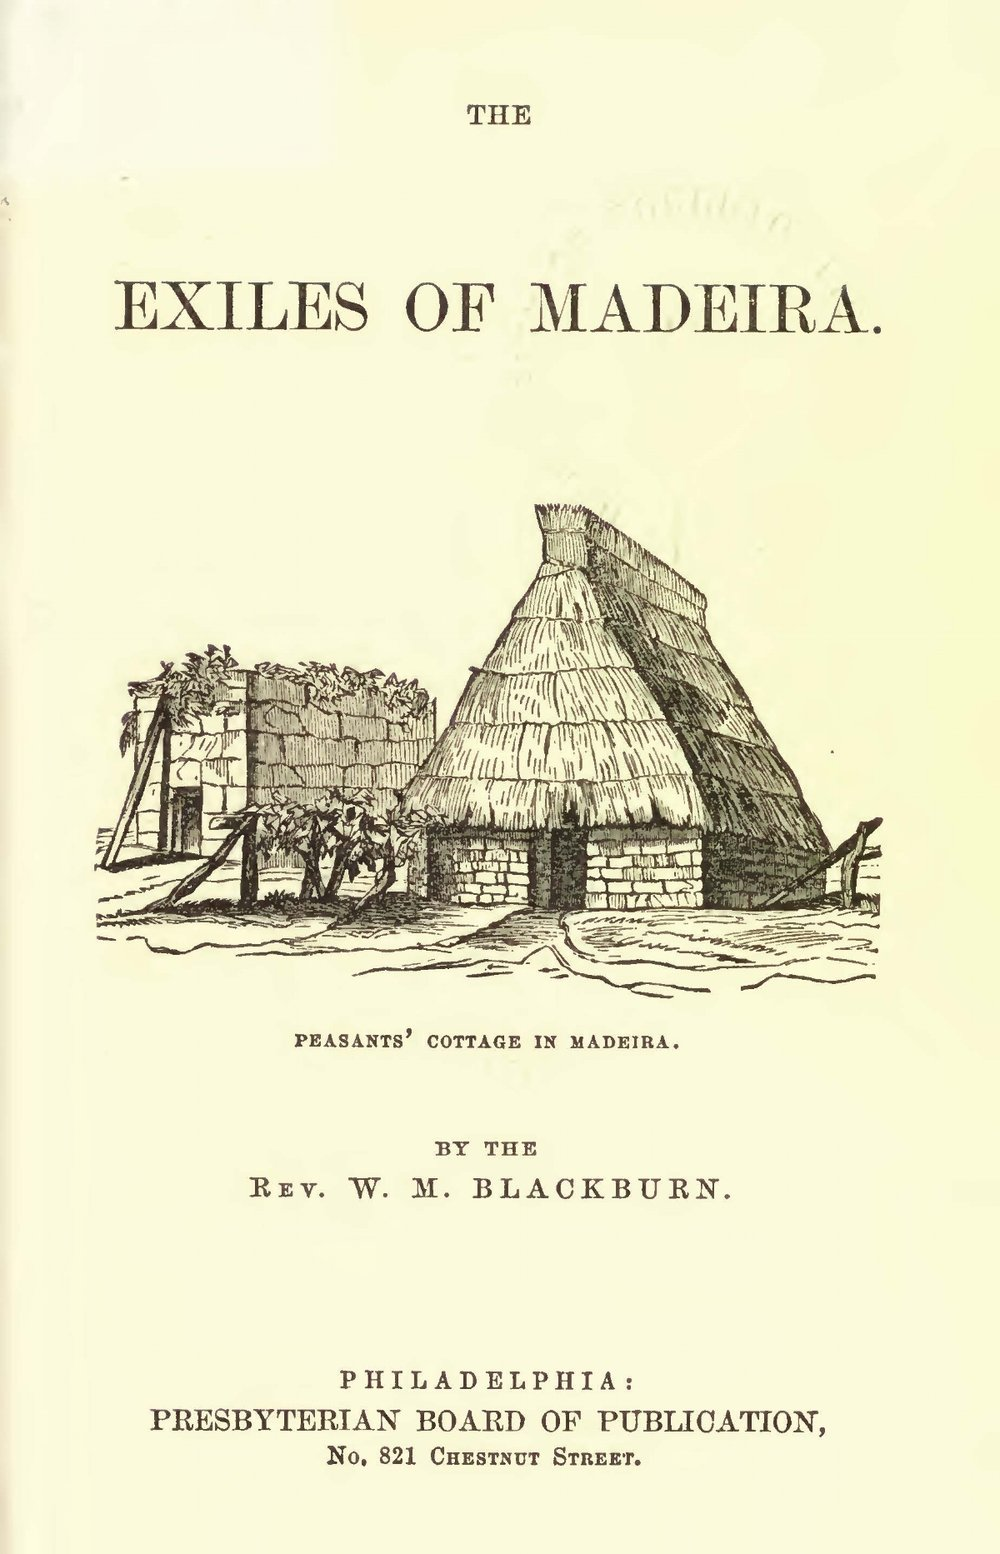 Blackburn, William Maxwell, The Exiles of Madeira Title Page.jpg